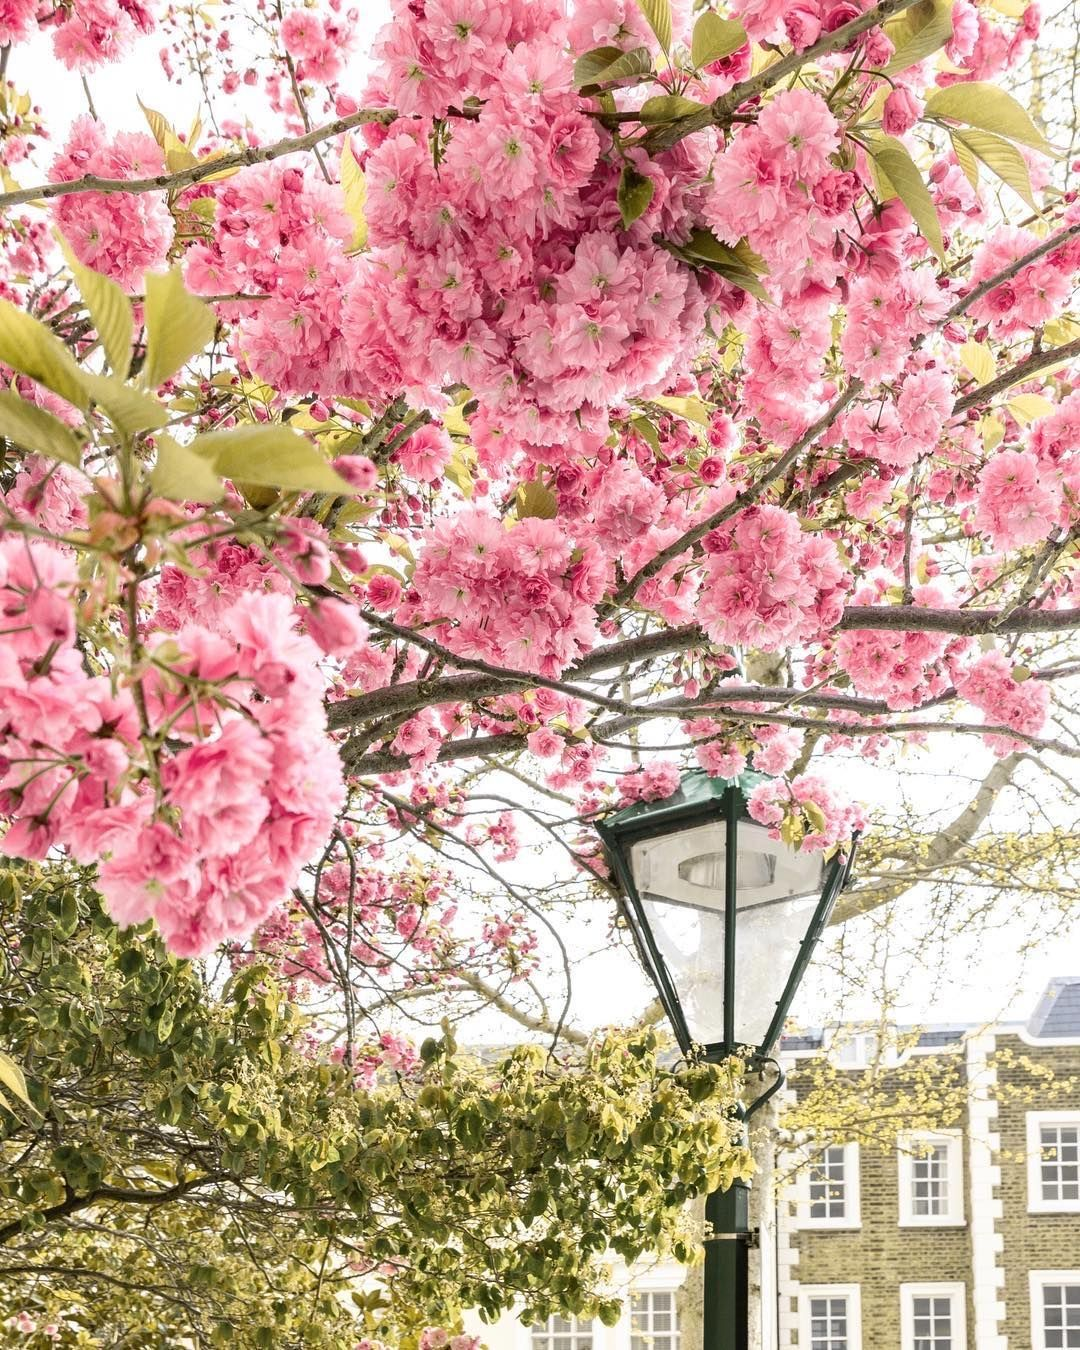 Cherry Blossoms Kensington And Chelsea London England By Michael Sparrow Sparrowinlondon On Instagram Flowering Trees Instagram Blossom